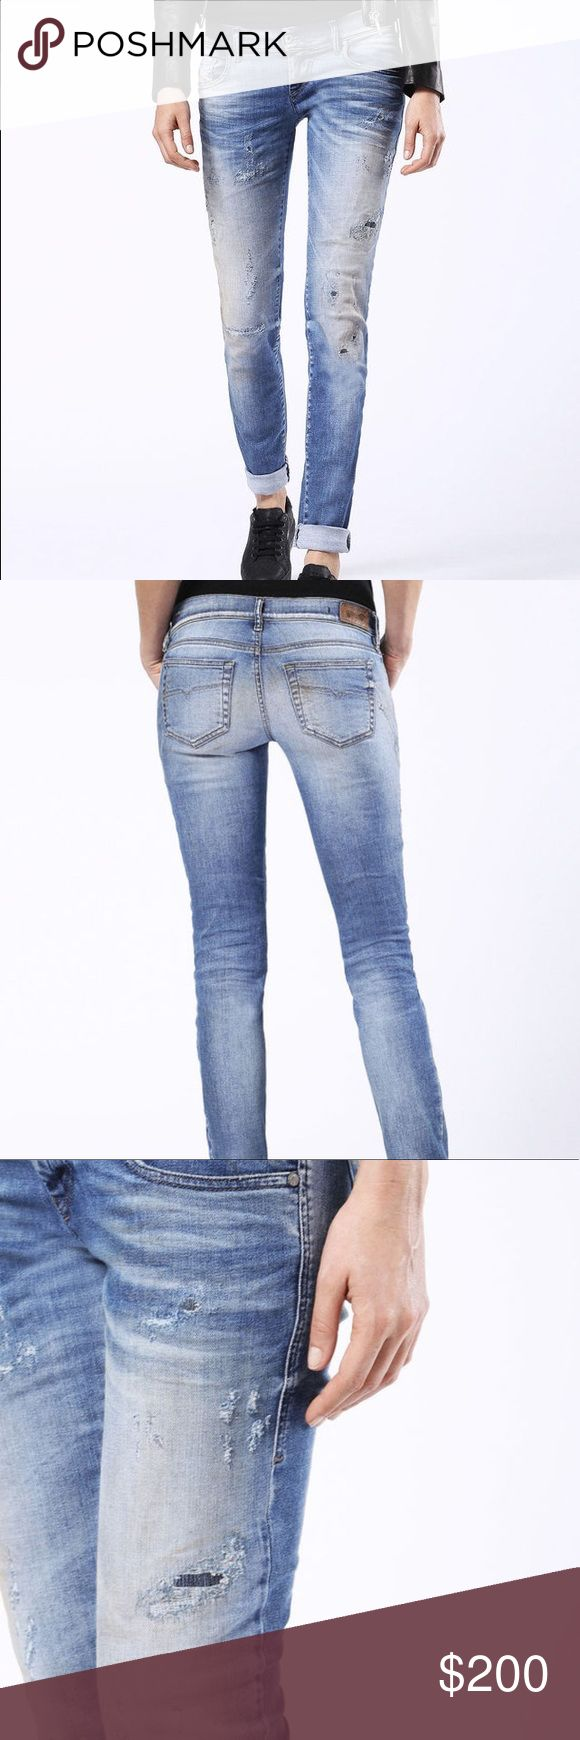 Diesel Denim *Grupee* Style EUC SS'17 *like new* Diesel Denim Grupee Style Wash #0674M Super Slim-Skinny Low Waist w/ Stretch Sz. W28 L30 I normally wear a 27 in denim but these run smaller so I went with a 28. EUC only worn a handful of times. Diesel Denim lasts forever and is all hand distressed. This pair was made in ITALY. Diesel Pants Skinny